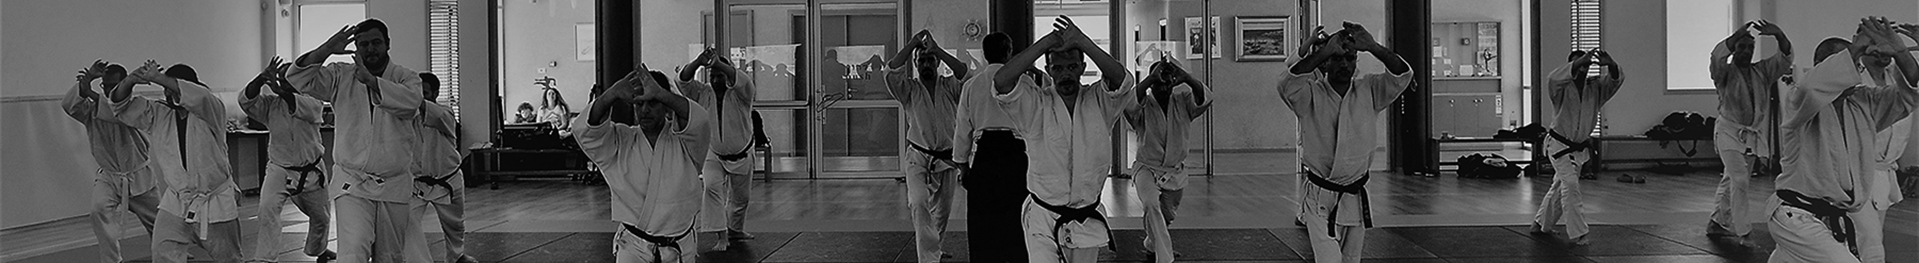 The Last Seiza – A tale about the last seiza seesion that Master Gozo Shioda conducted